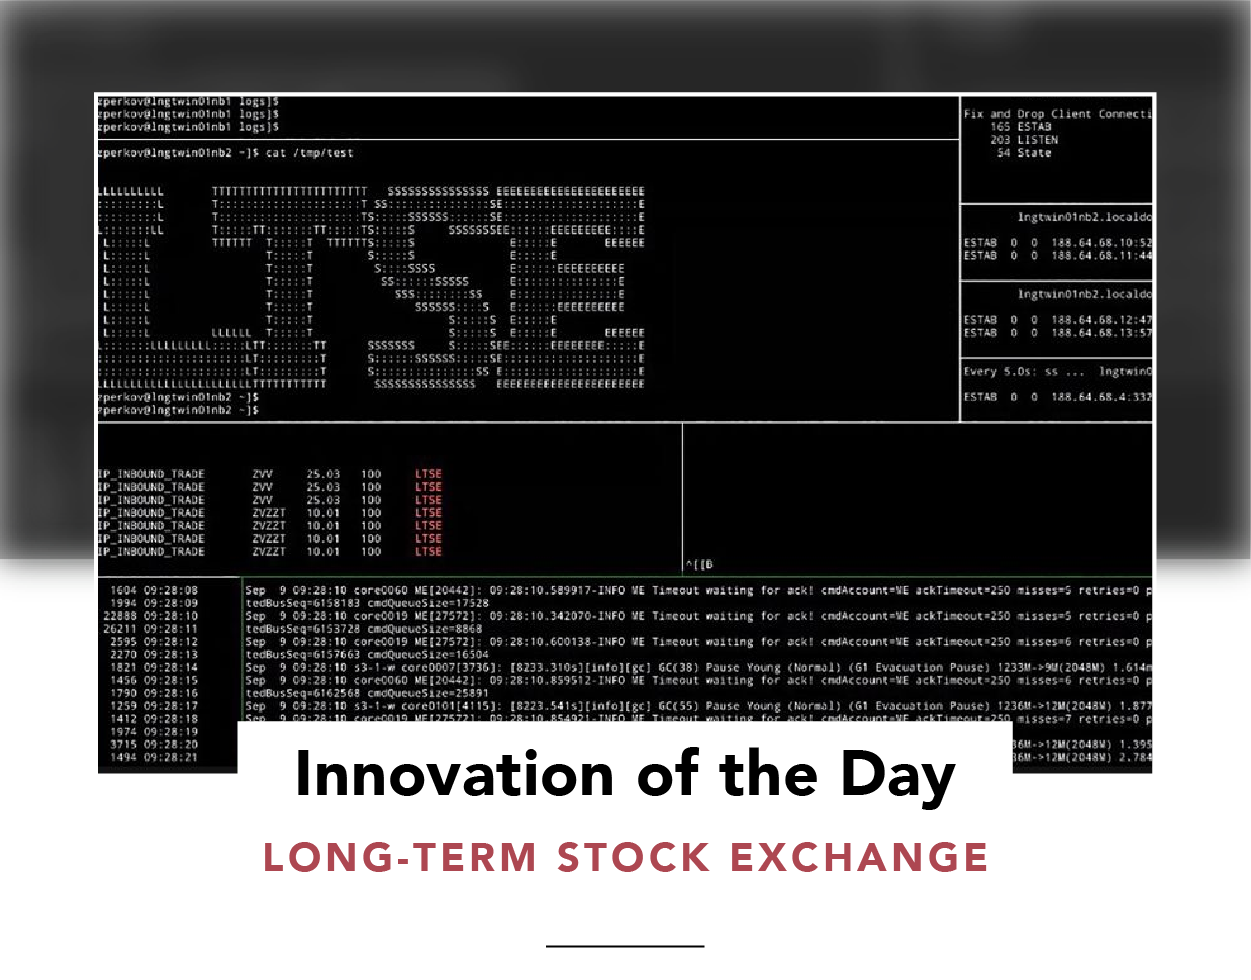 LONG-TERM STOCK EXCHANGE 2-04